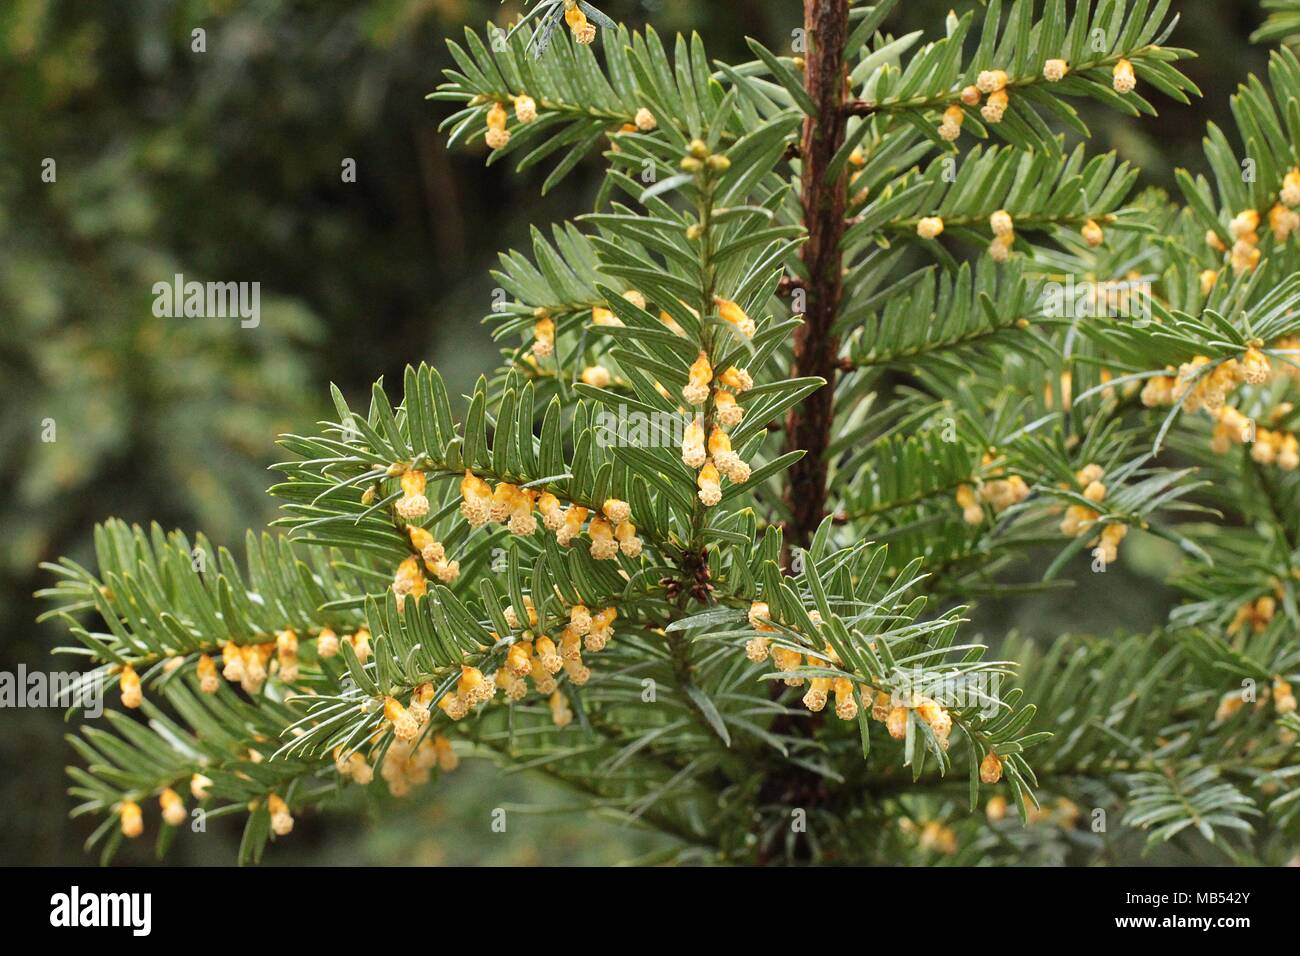 yellow male flowers of european yew - Taxus baccata - Stock Image